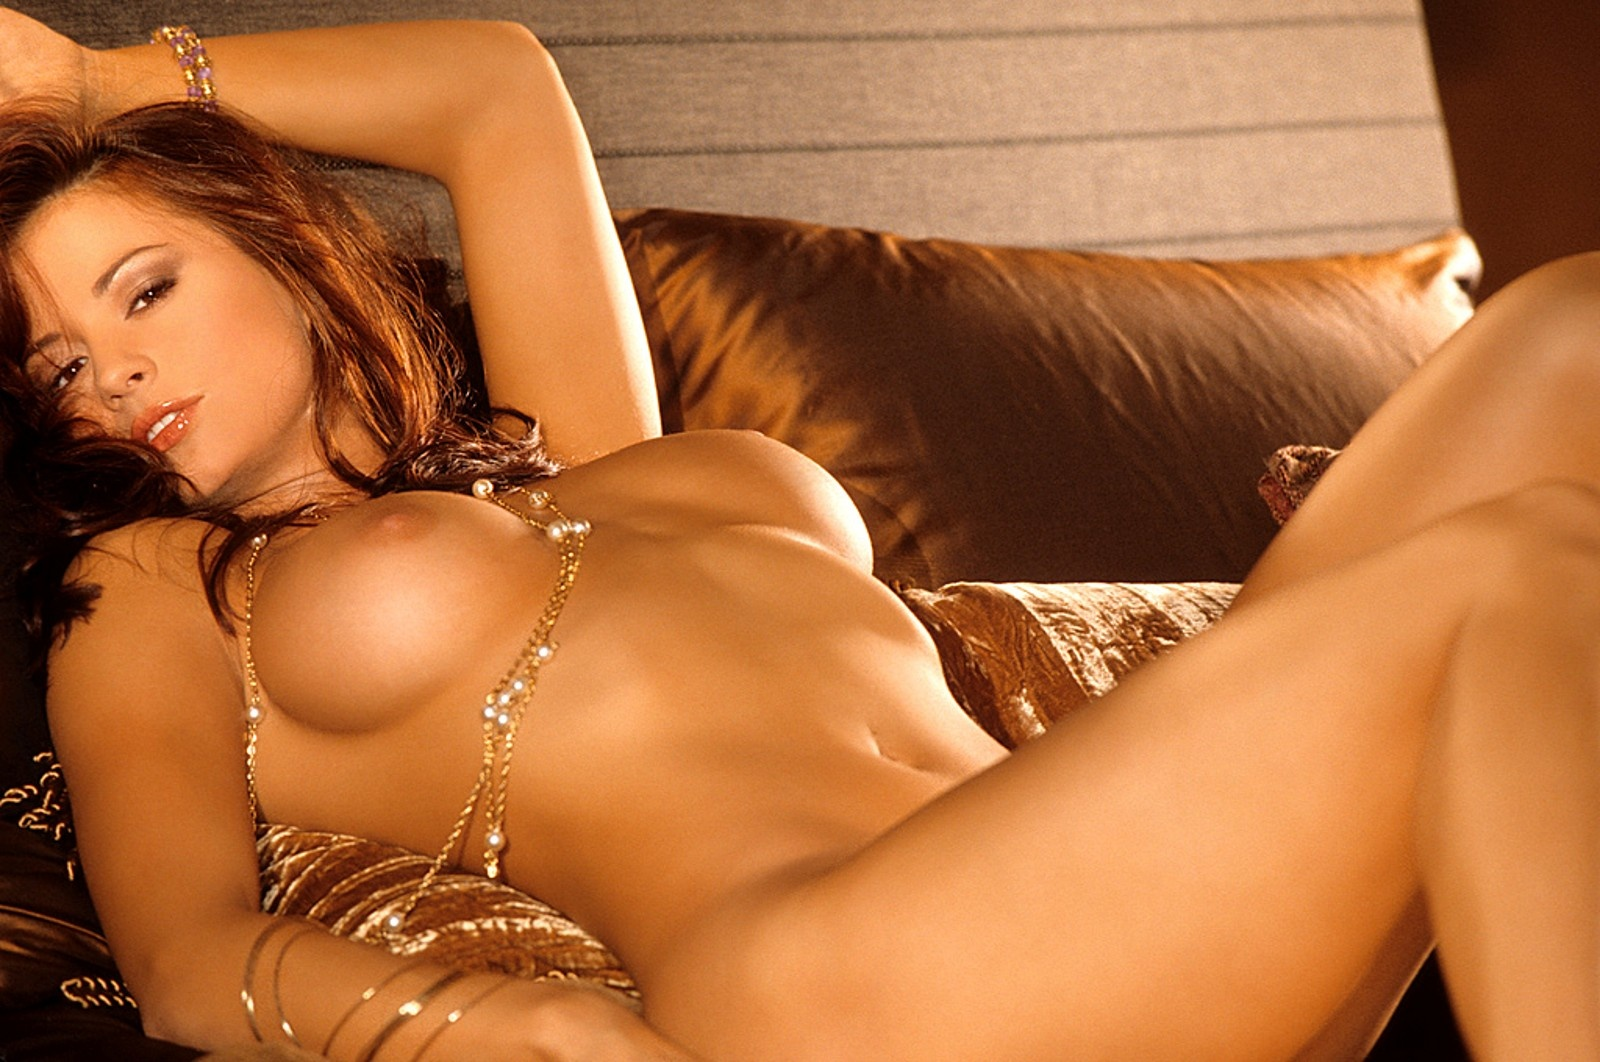 Necessary phrase... Free nude pic of the tna girls